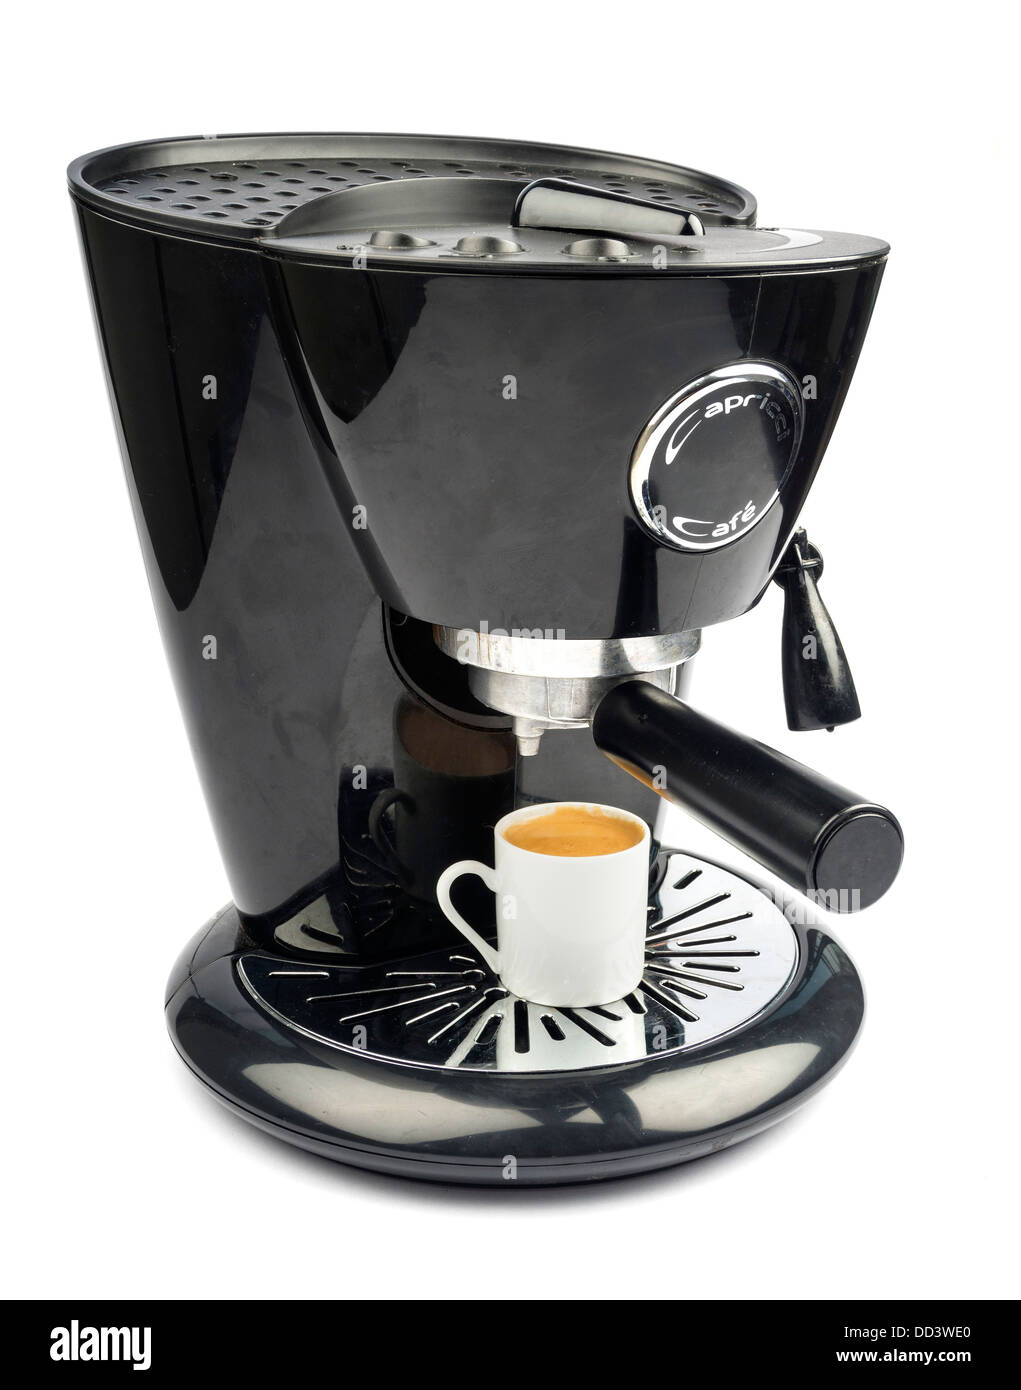 Black electric espresso coffee maker isolated on white background - Stock Image